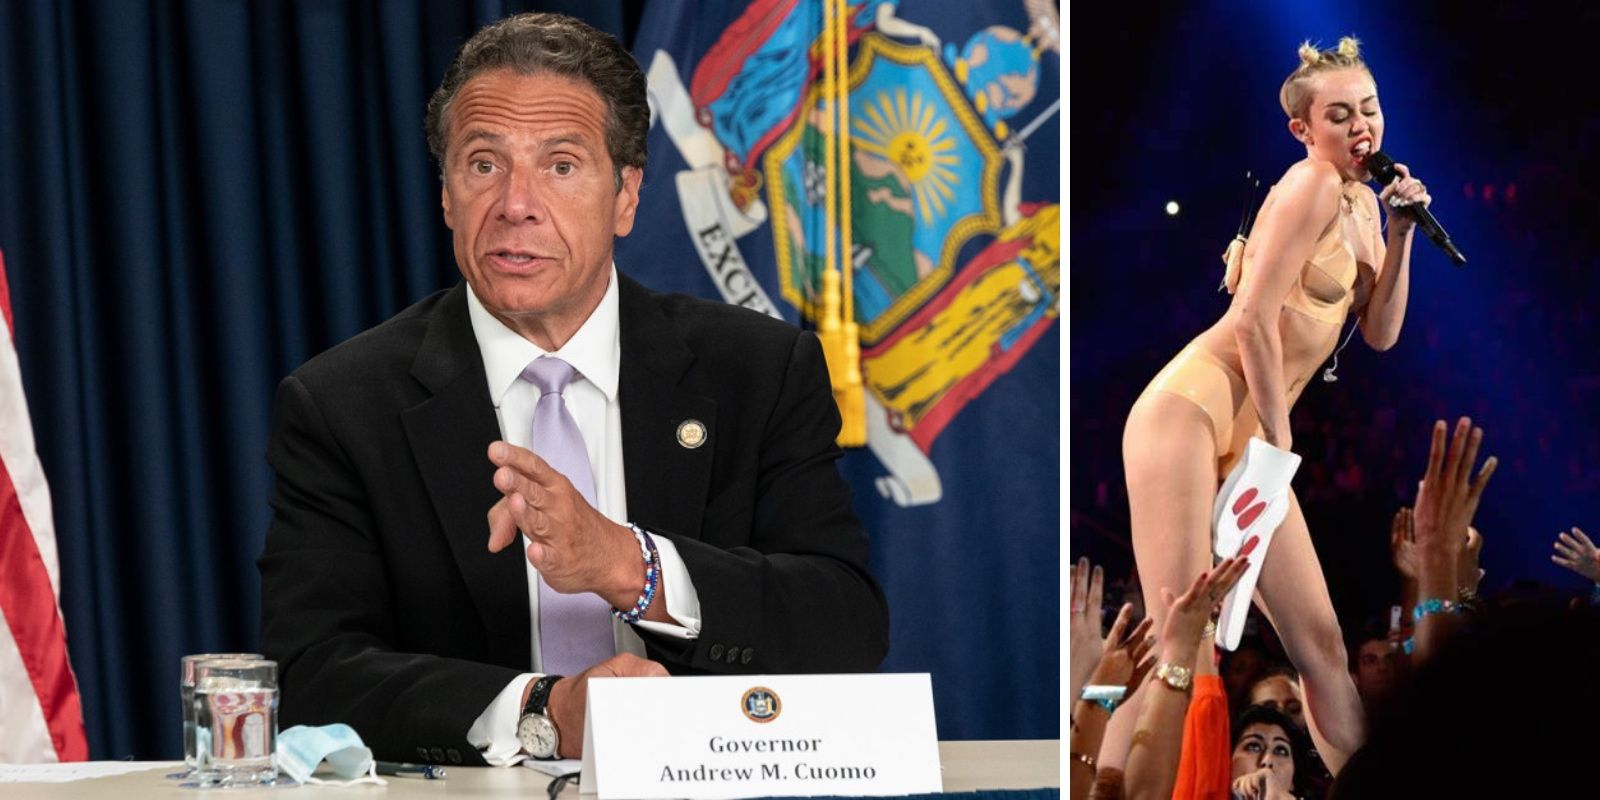 Cuomo grants special permission for pop stars to perform at VMAs as he actively punishes local NYC businesses